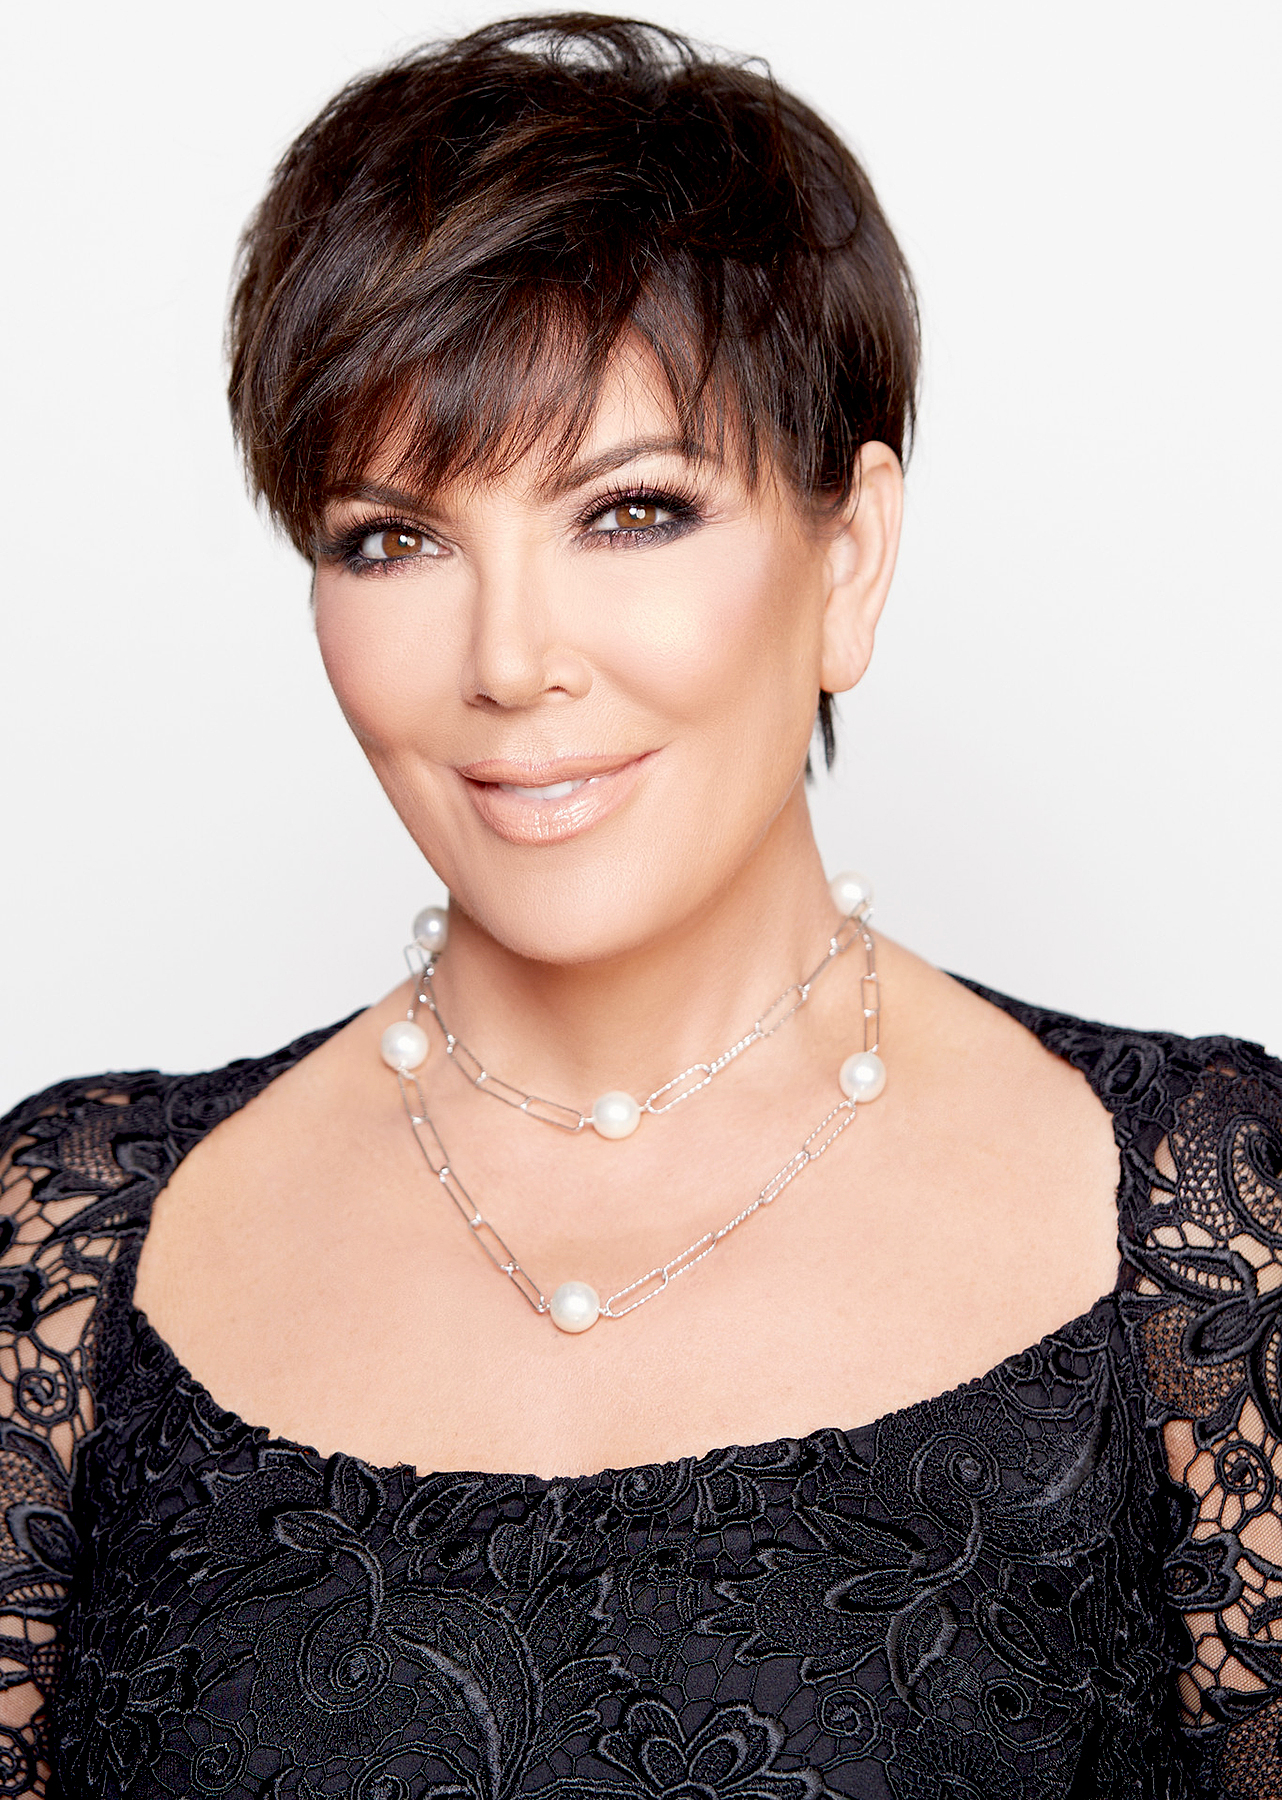 Kris Jenner Rumored to Be Dating Nigerian Billionaire